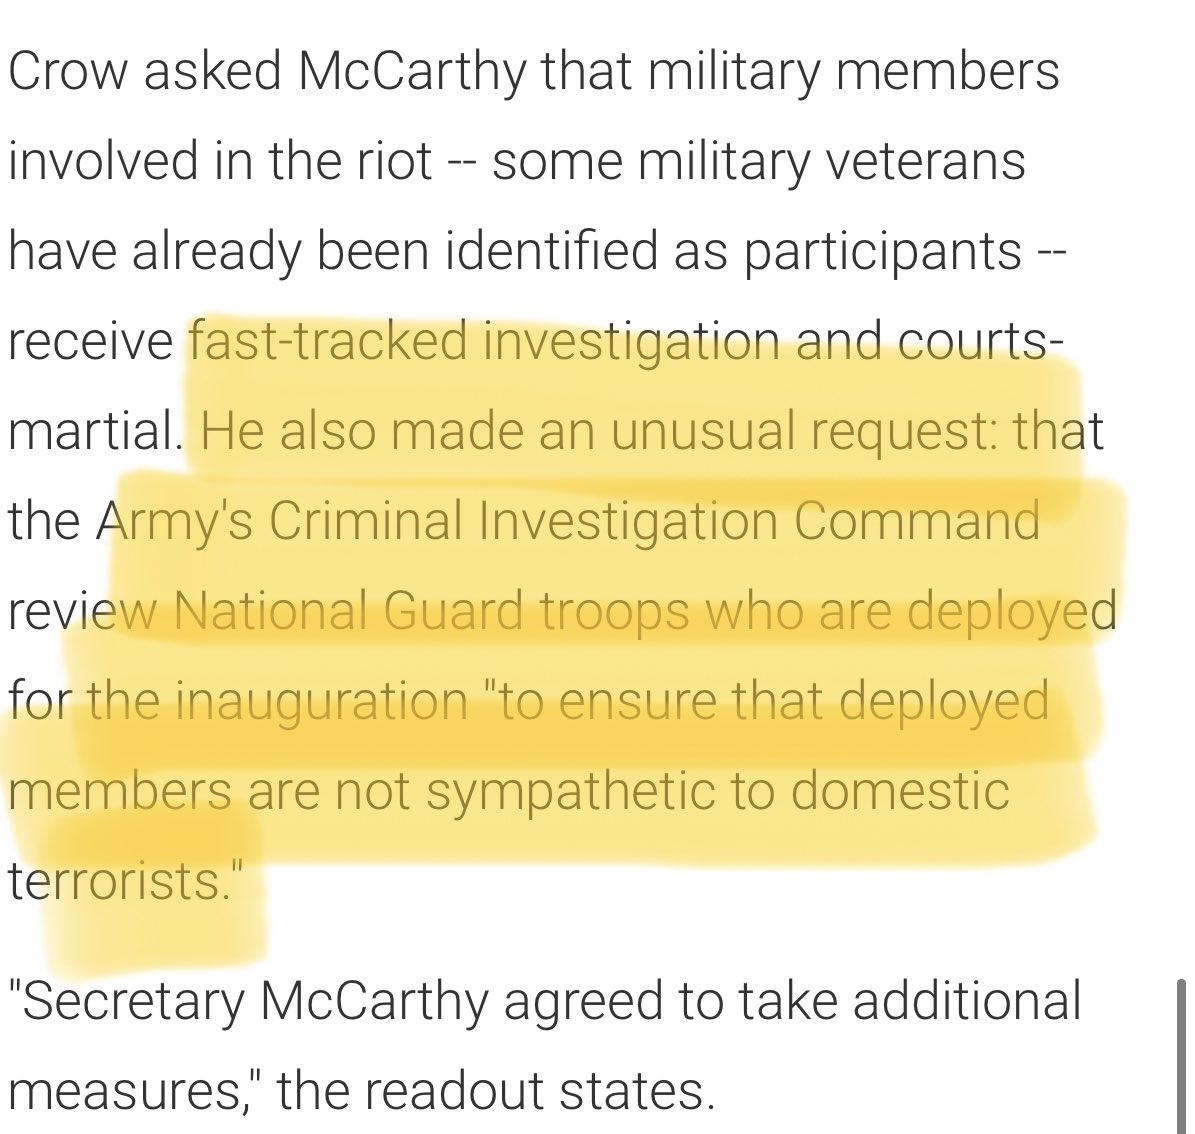 This is a terrifying prospect. It's explains why fmr Army Ranger @RepJasonCrow made the unusual request to Army Secy last week to vet Nat'l Guardsmen for domestic terror sympathies. I also discuss the homegrown extremism issue w/@esouthersHVE on my @Honestly_Tara 🎙 out now. twitter.com/ap/status/1350…